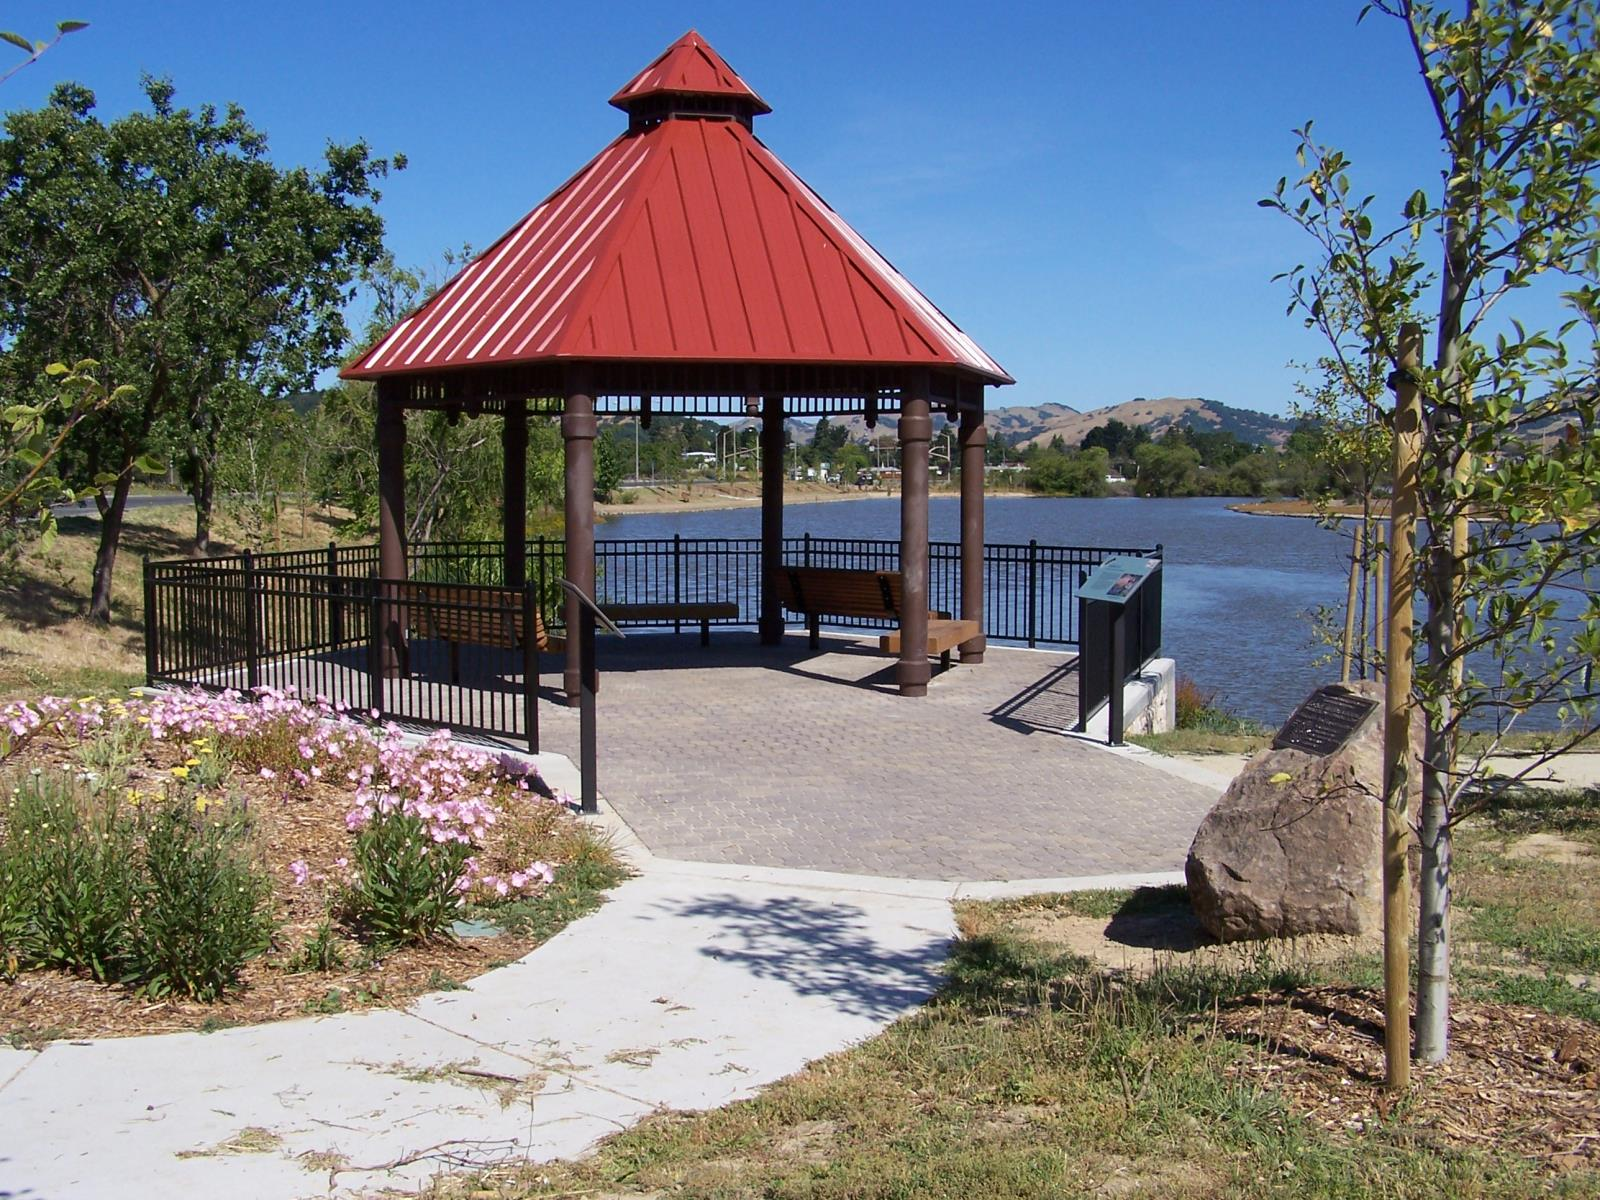 Scottsdale Pond Gazebo